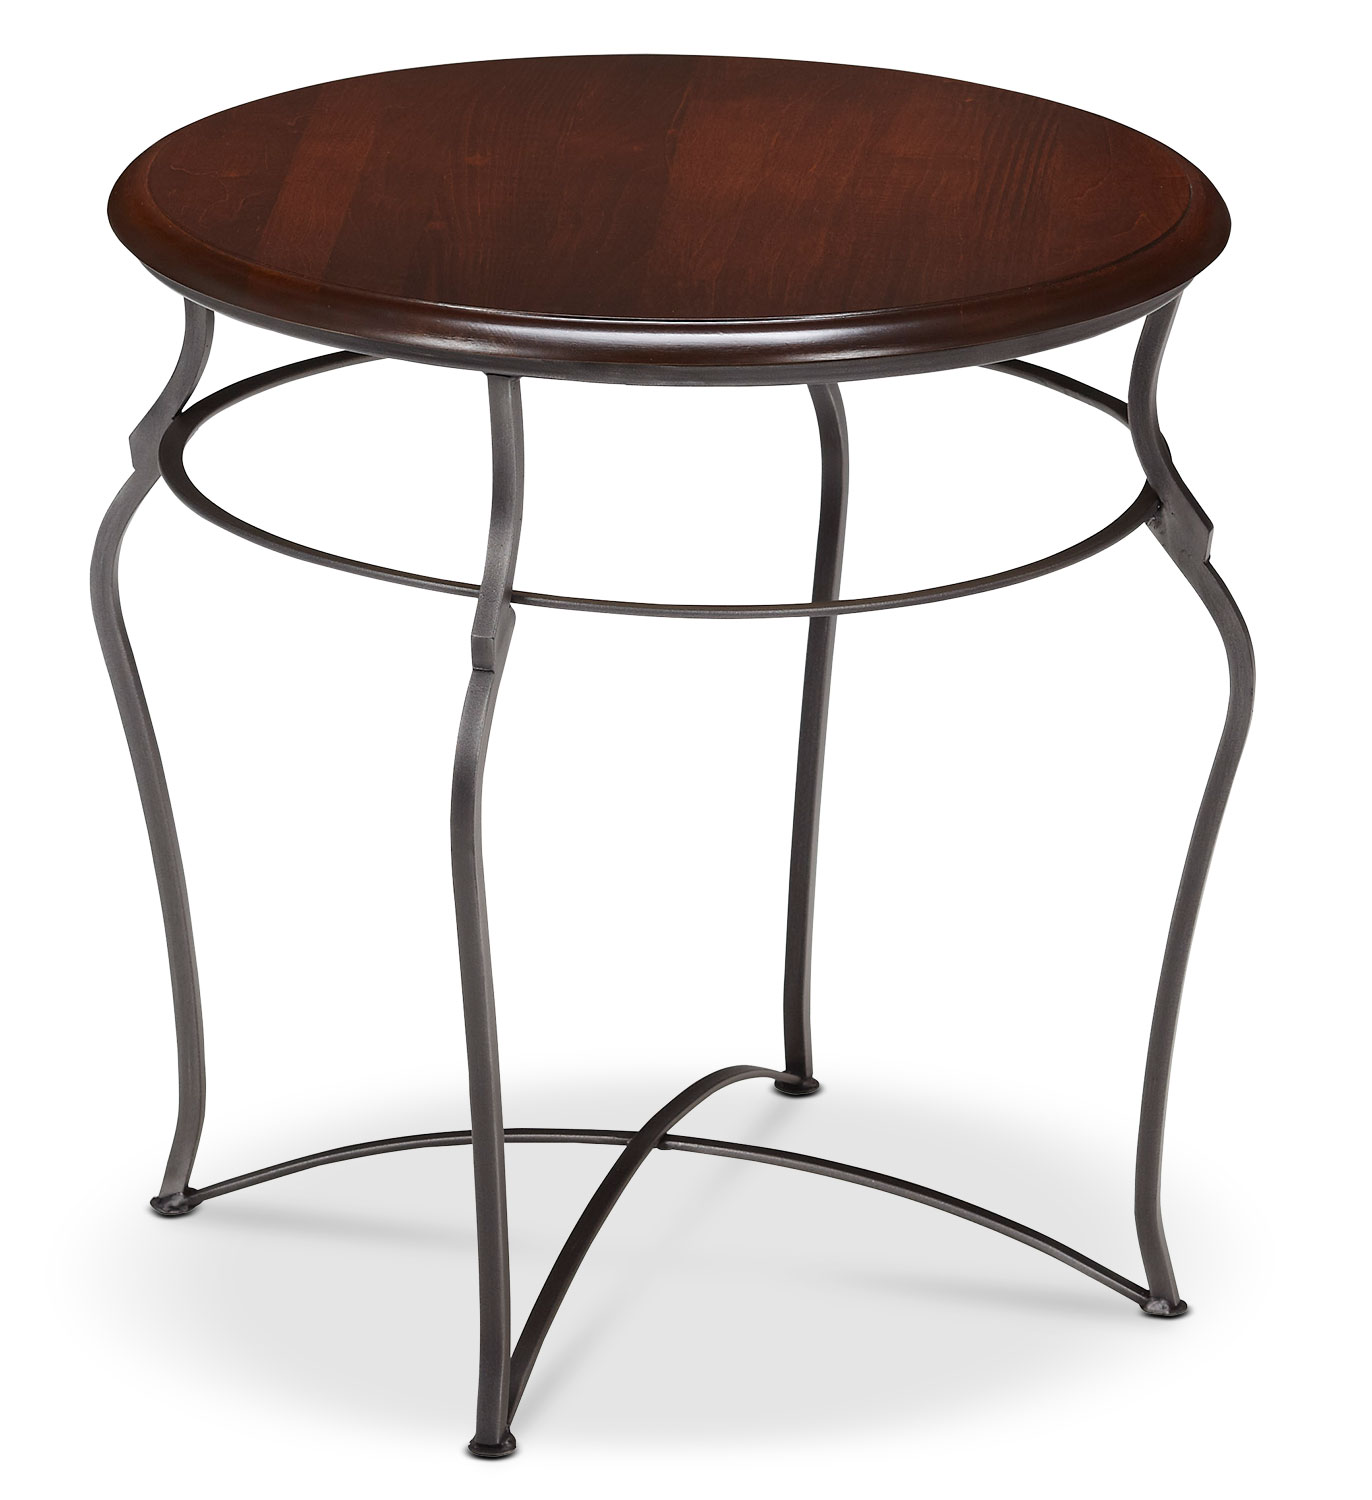 Accent and Occasional Furniture - Online Only - Adele End Table - Brown Cherry with Pewter Base